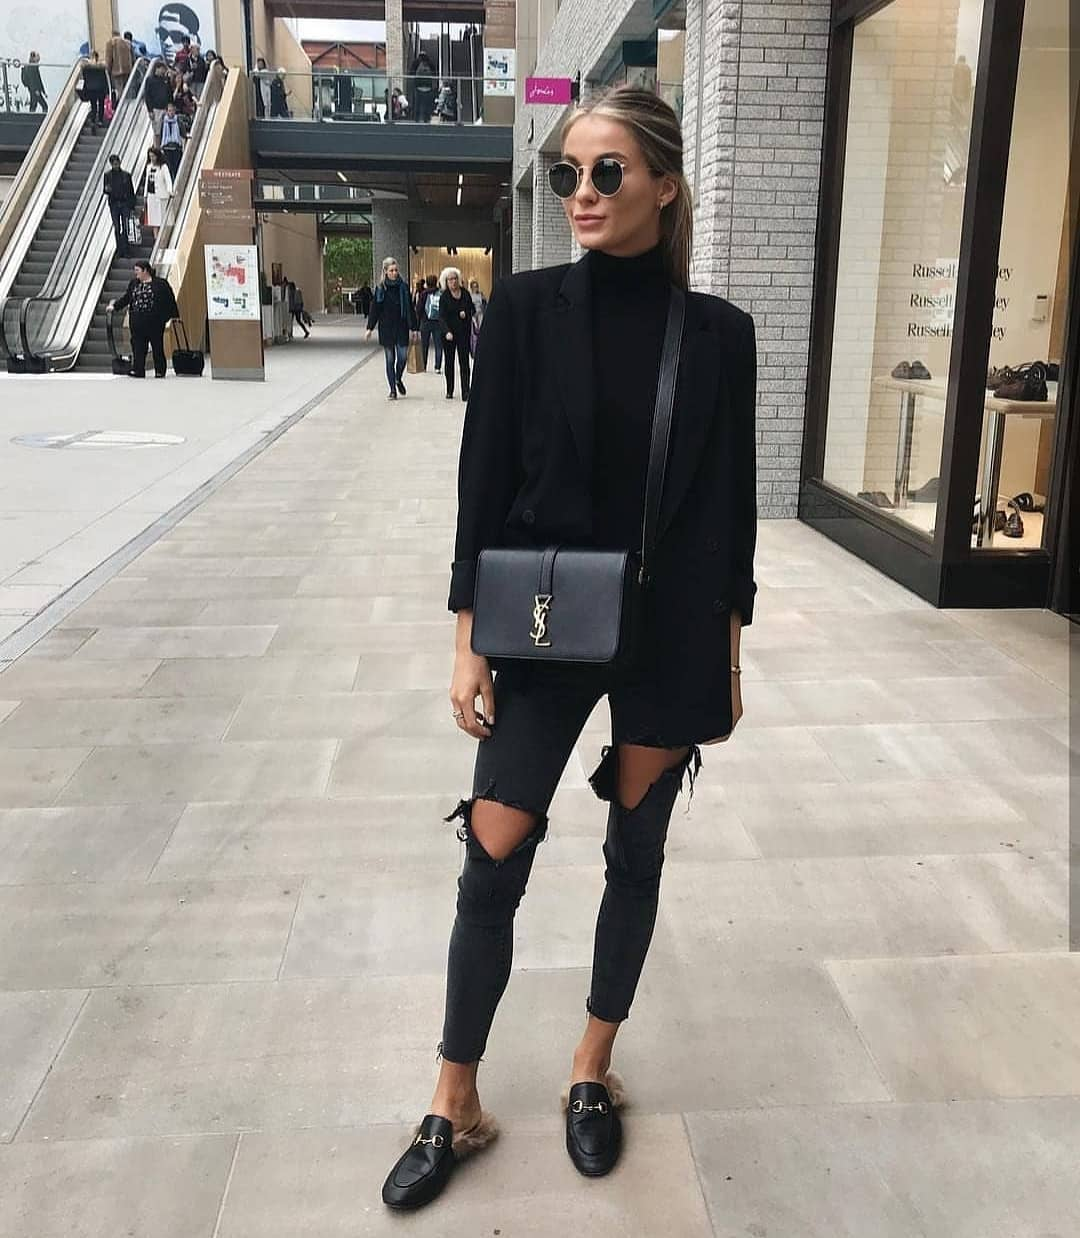 All Black Spring Outfit Idea With Black Blazer And Knee Ripped Jeans 2020